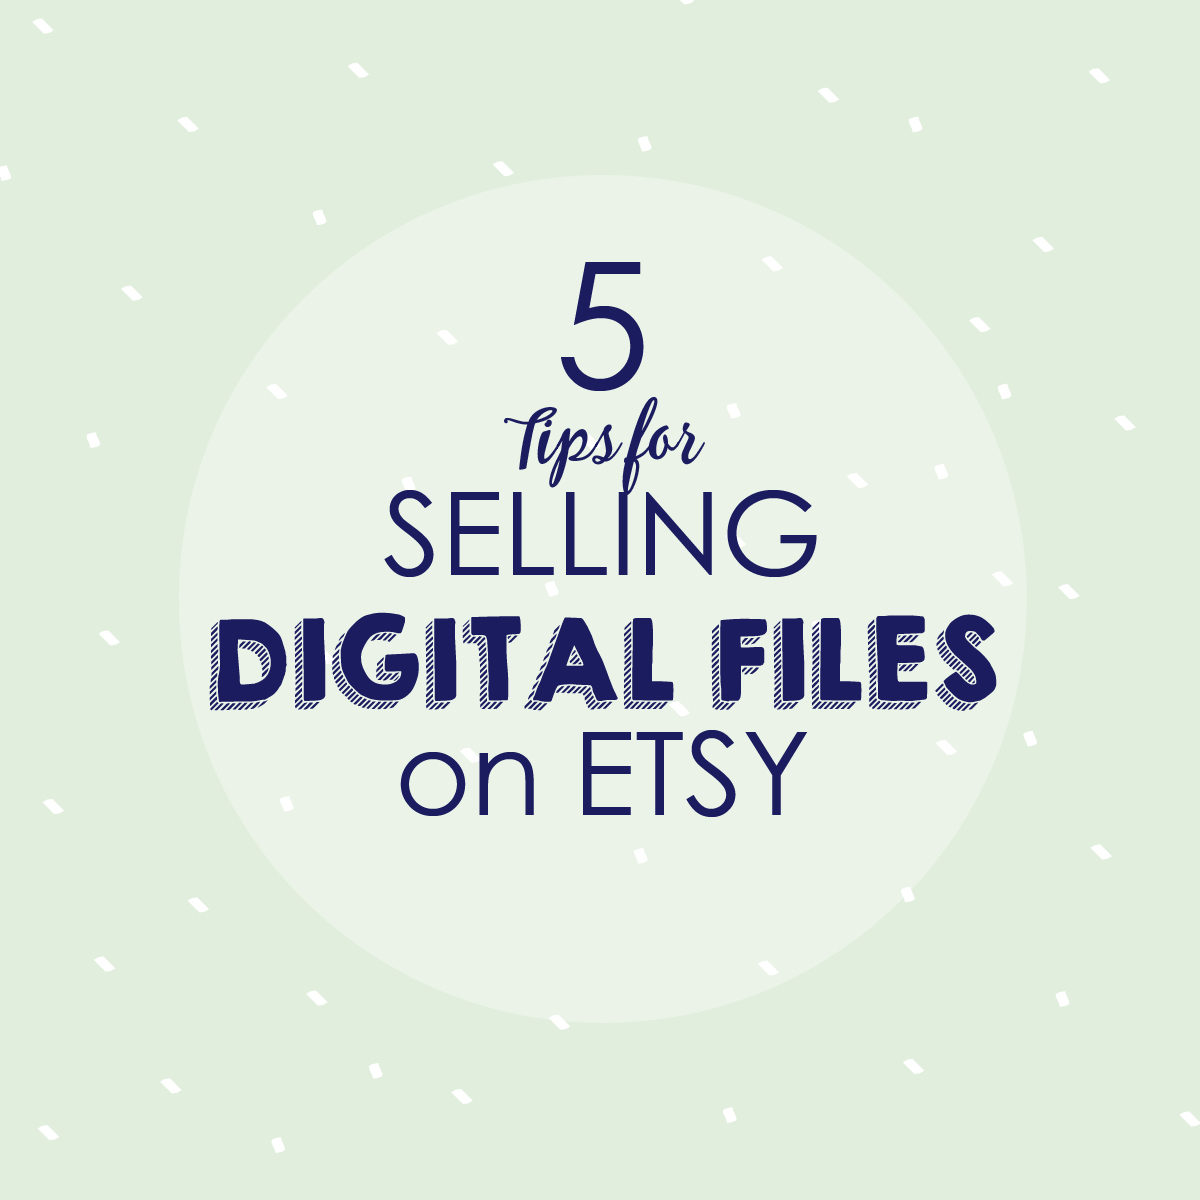 How To Create And Sell Digital Files To Sell On Etsy